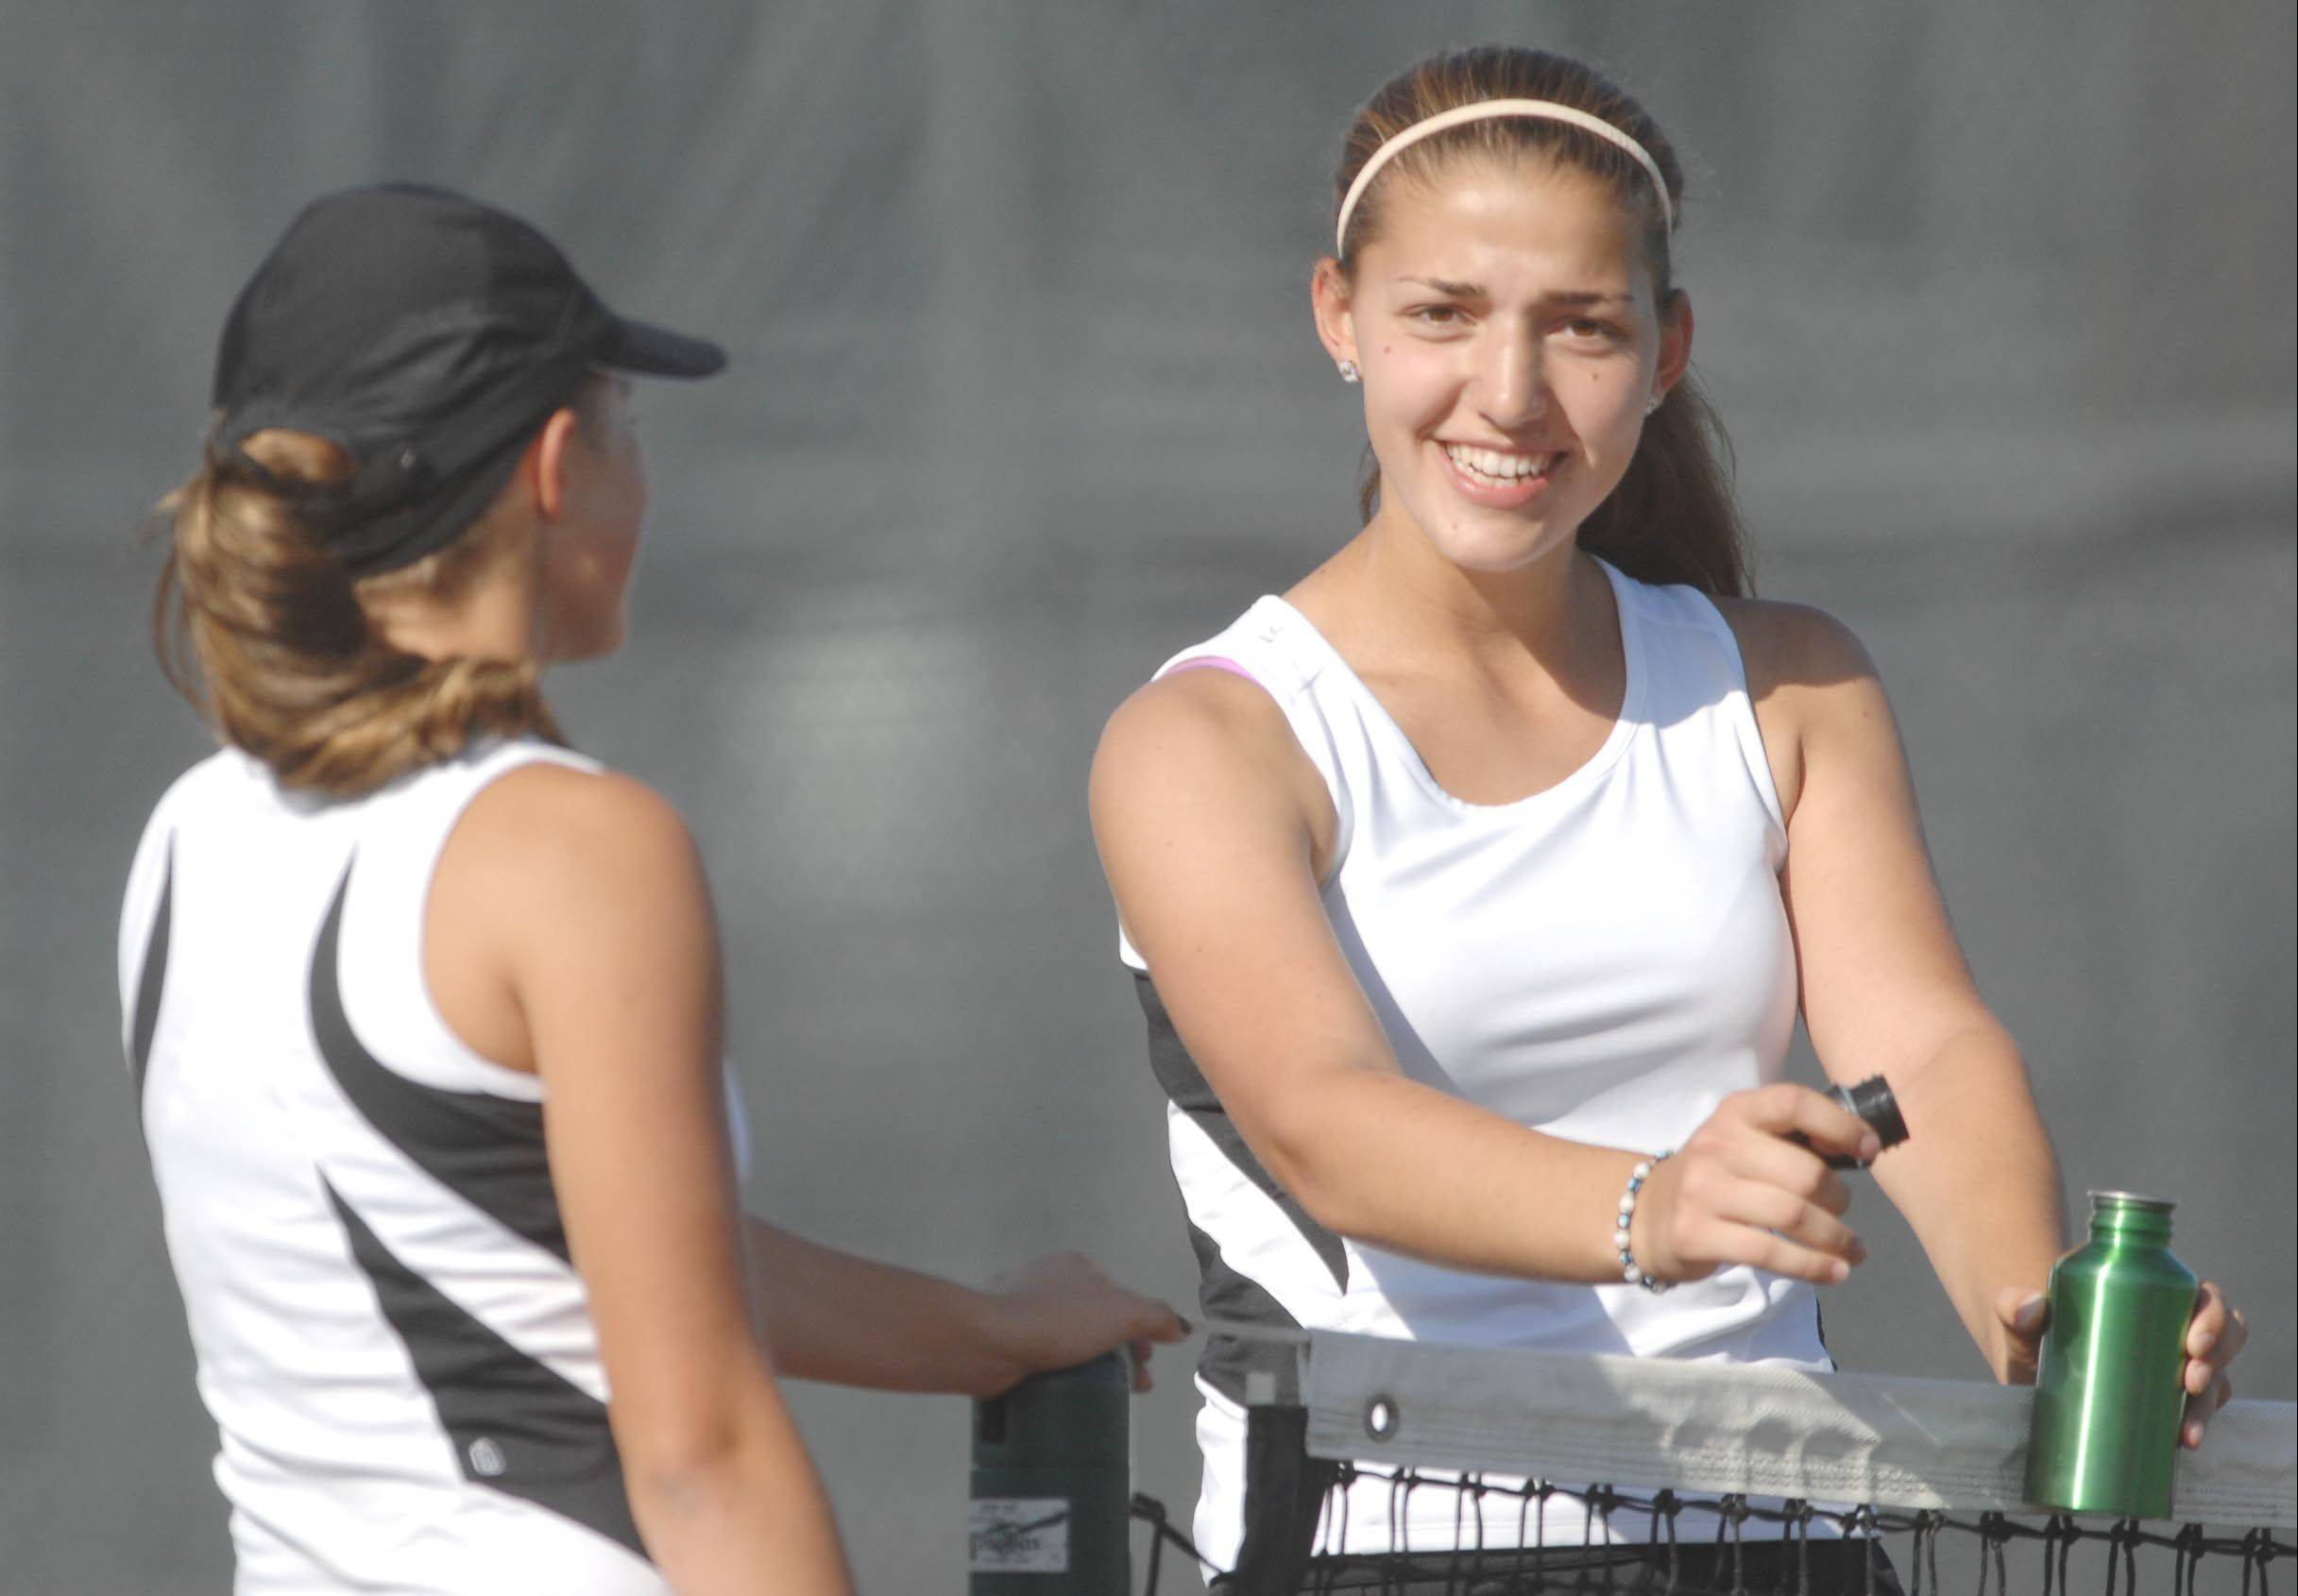 Kaneland's Madison Jurcenko and Angelica Emmanouil, right, became the first players in school history last year to earn all-state honors. The duo is part of a strong returning lineup.